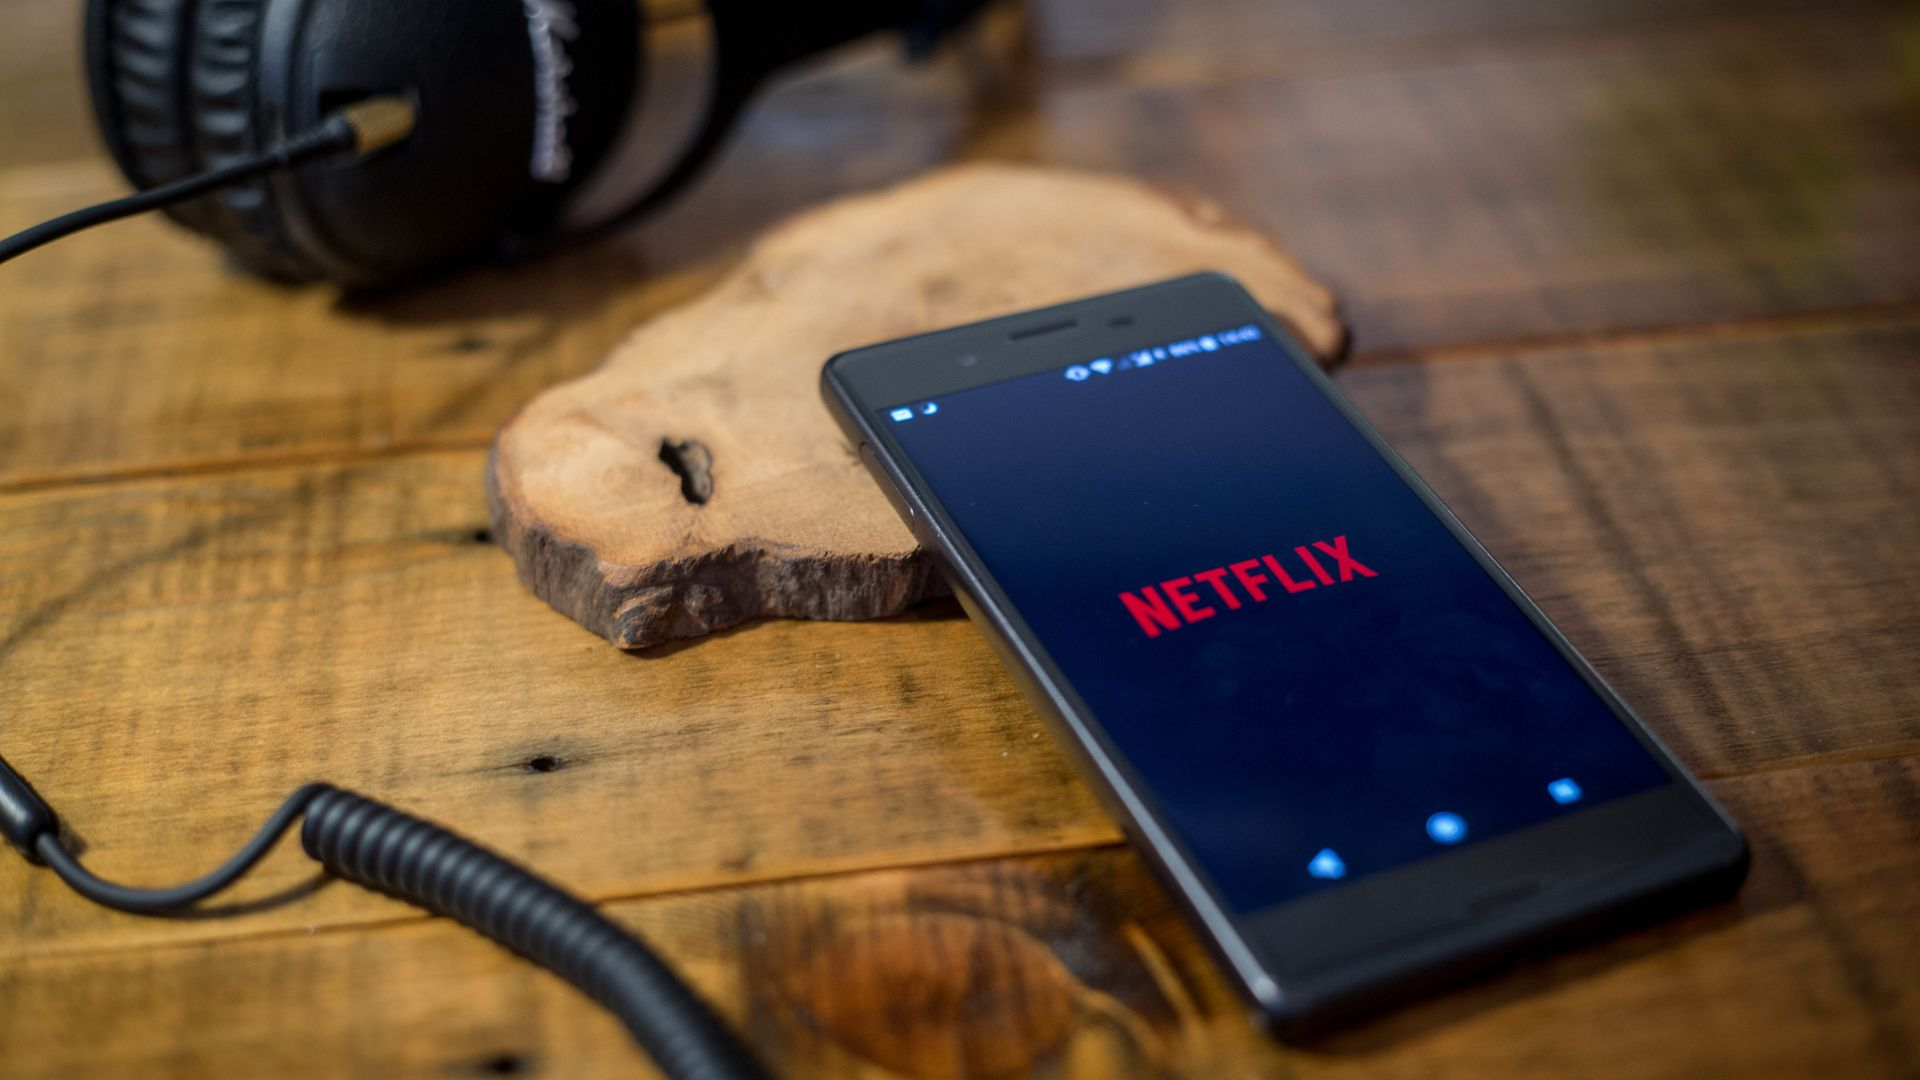 The netflix logo is displayed on a mobile phone with headphones plugged in